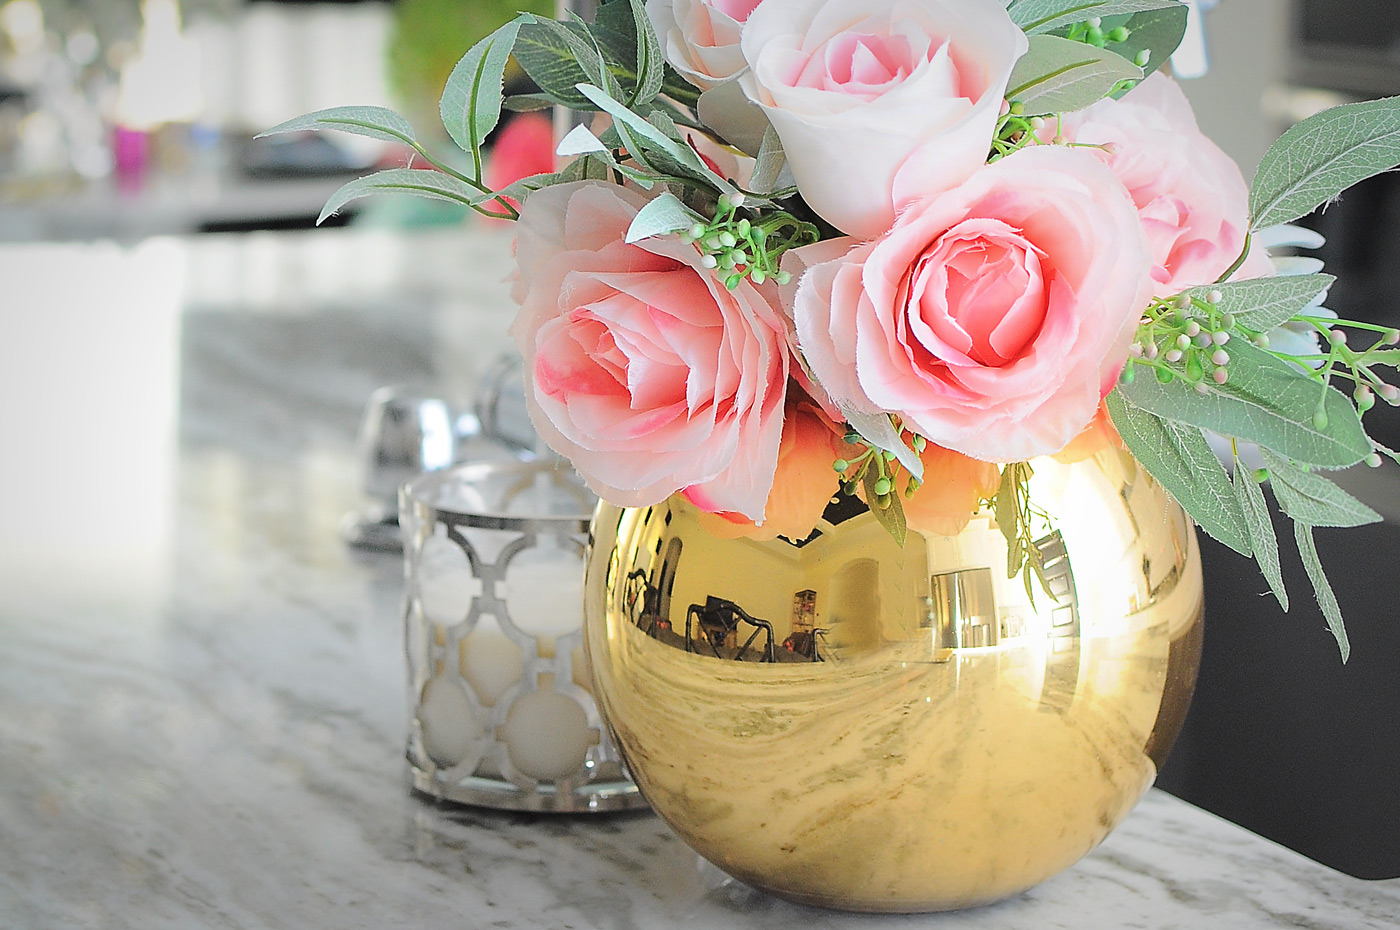 A gold vase with pink flowers looks gorgeous on a marble countertop.